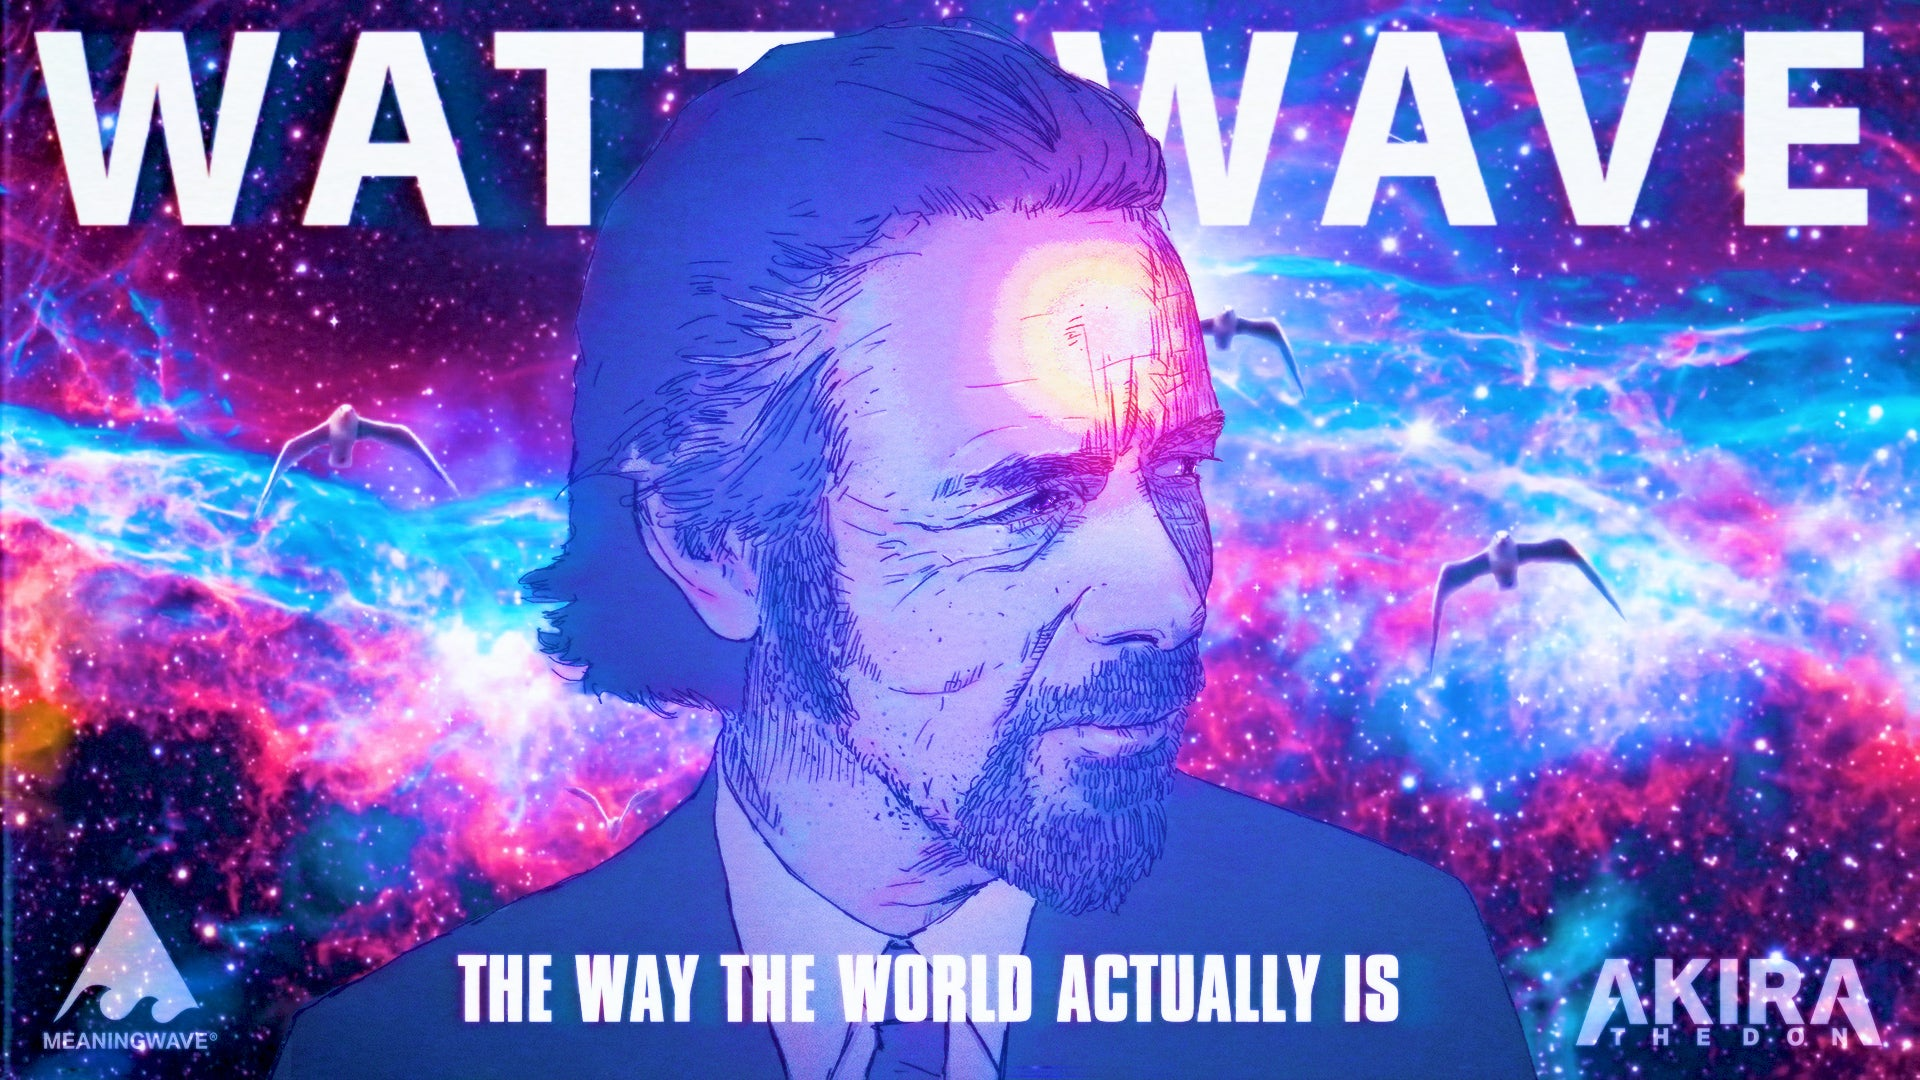 THE WAY THE WORLD ACTUALLY IS ft. Alan Watts (Single & Music Video)